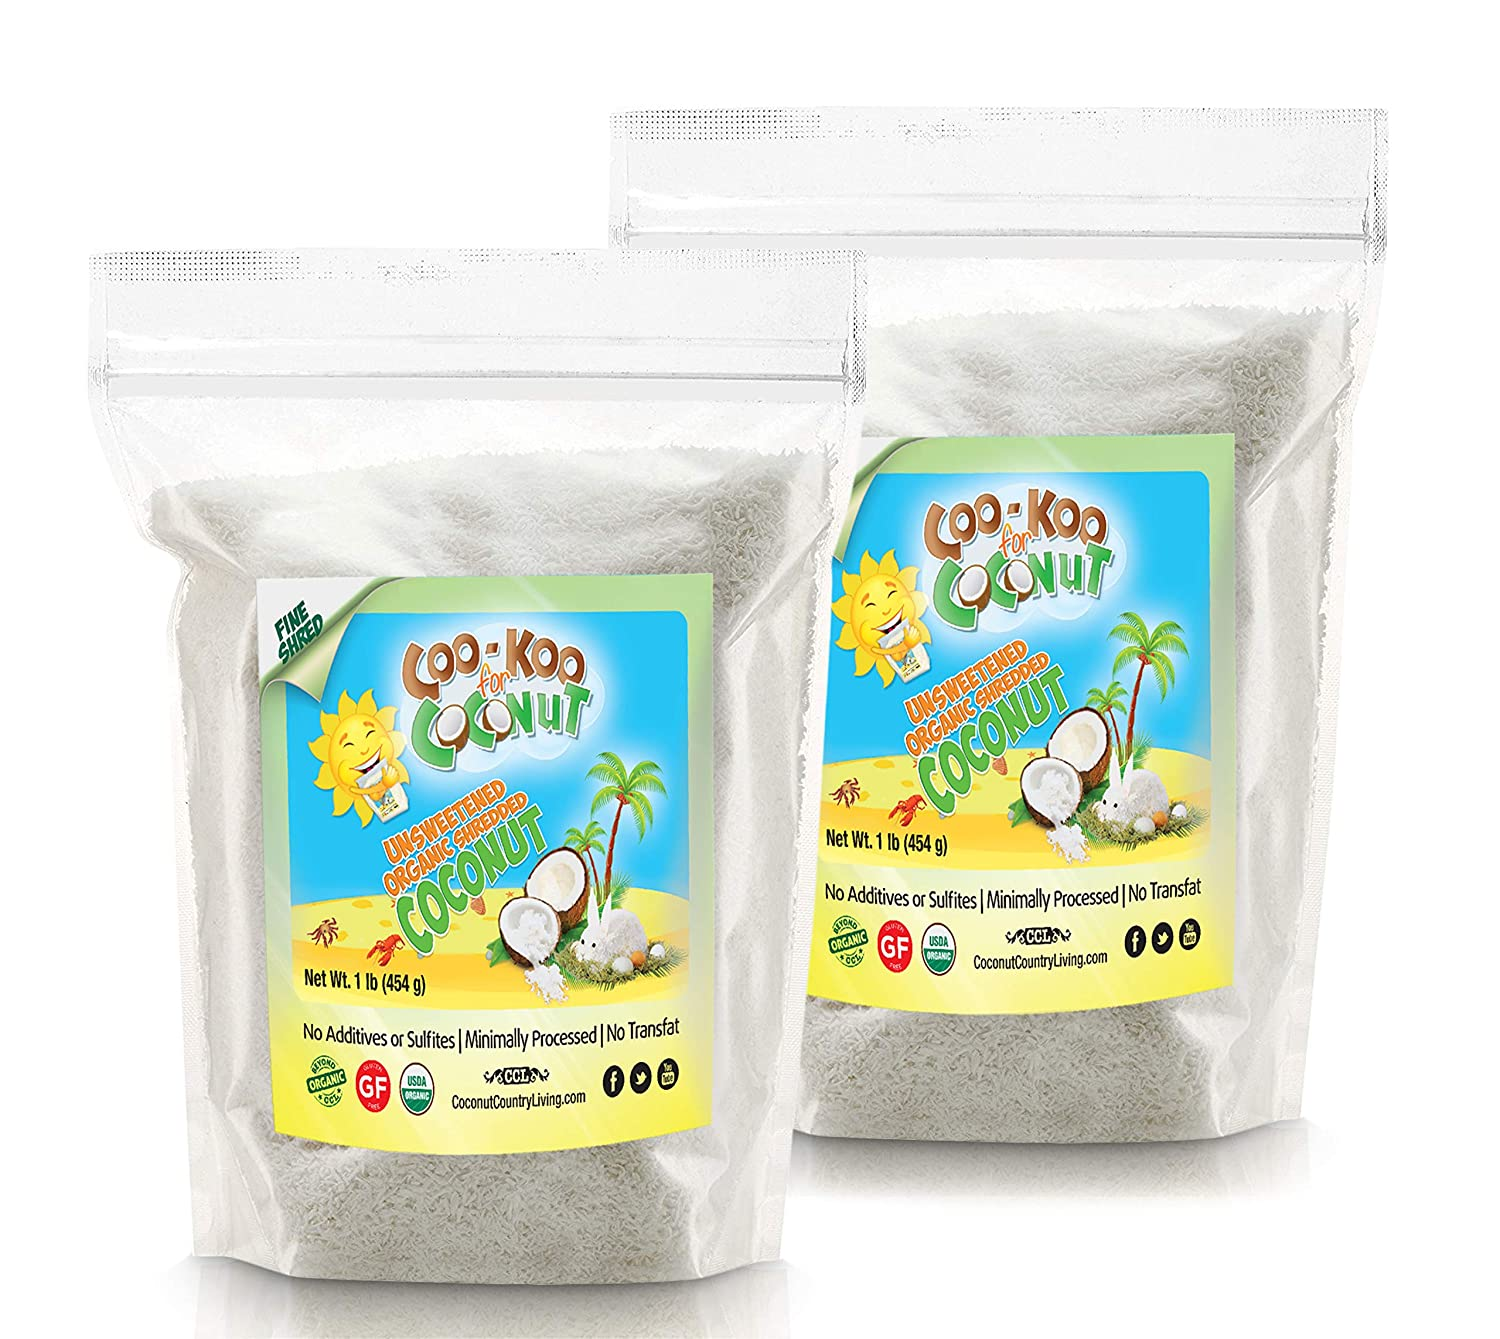 Organic Shredded Coconut Unsweetened, 2 lbs, Fine Shred, Great for Coconut Milk, Keto and Paleo Treats (1 lb pack of 2)